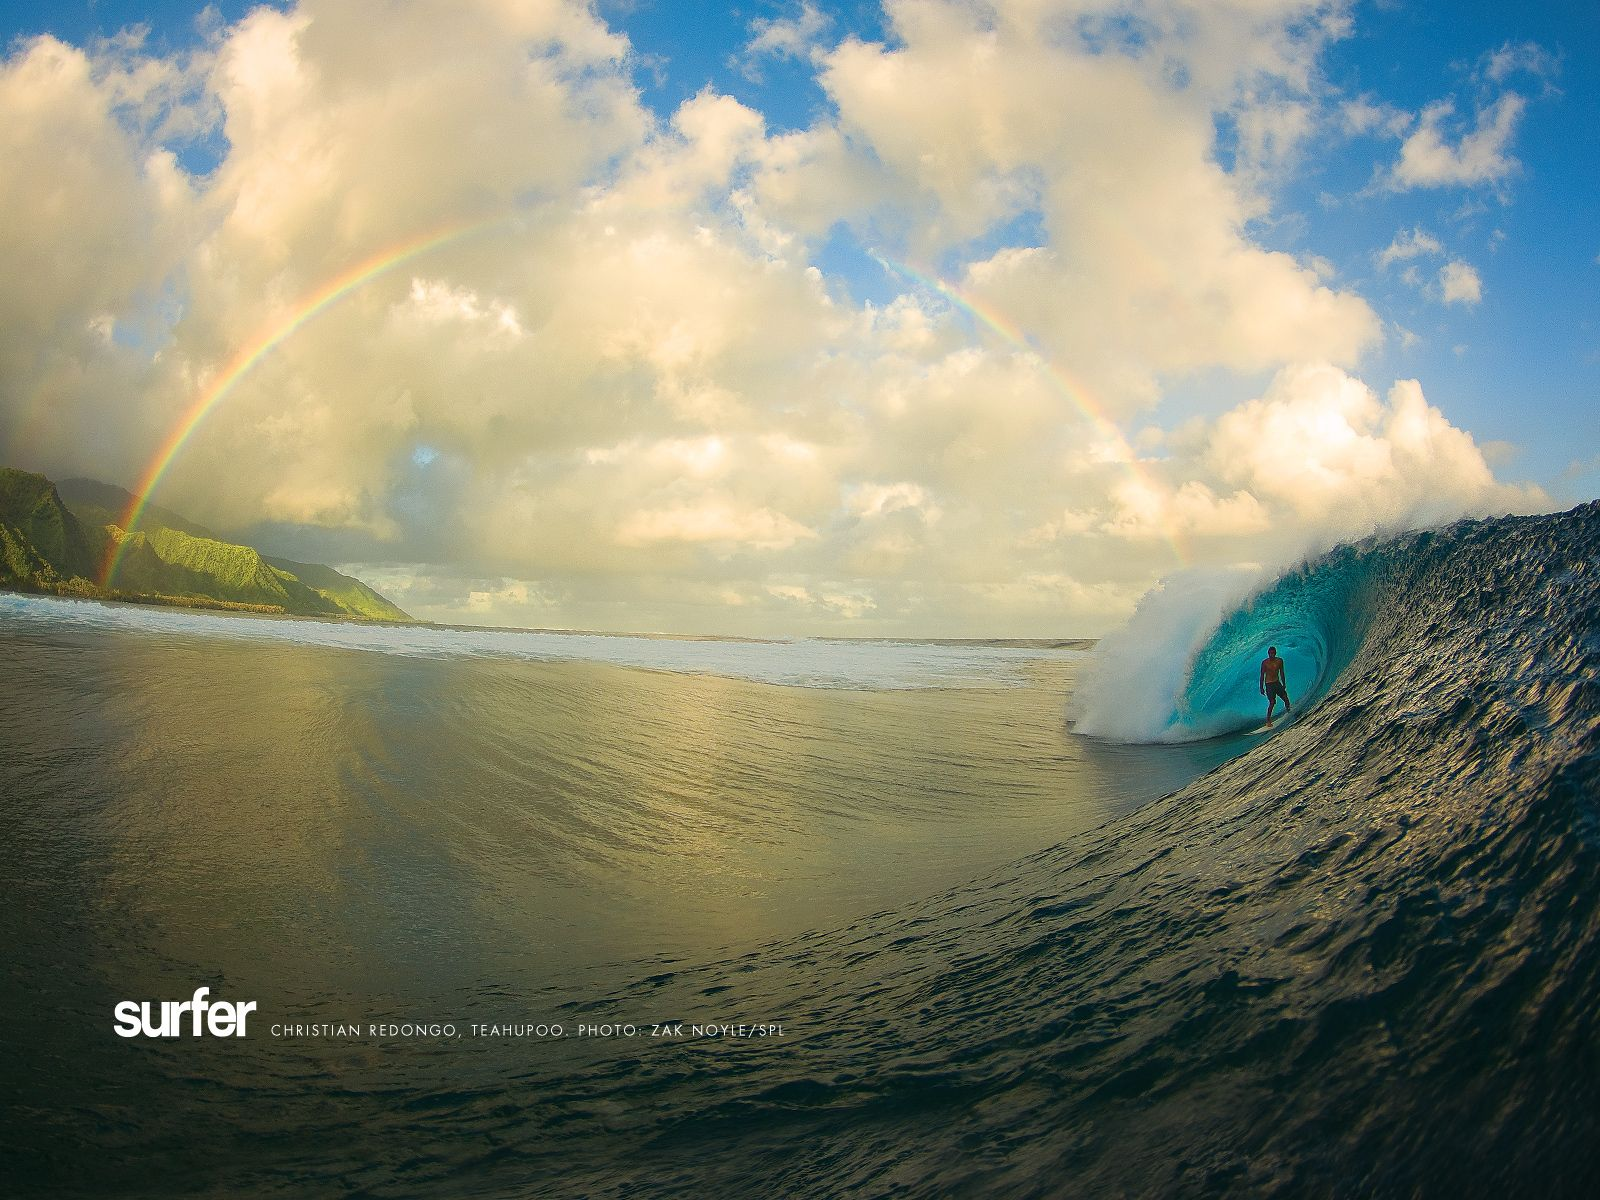 Wallpapers Surfer Magazine Surfing Photography Surfing Landscape